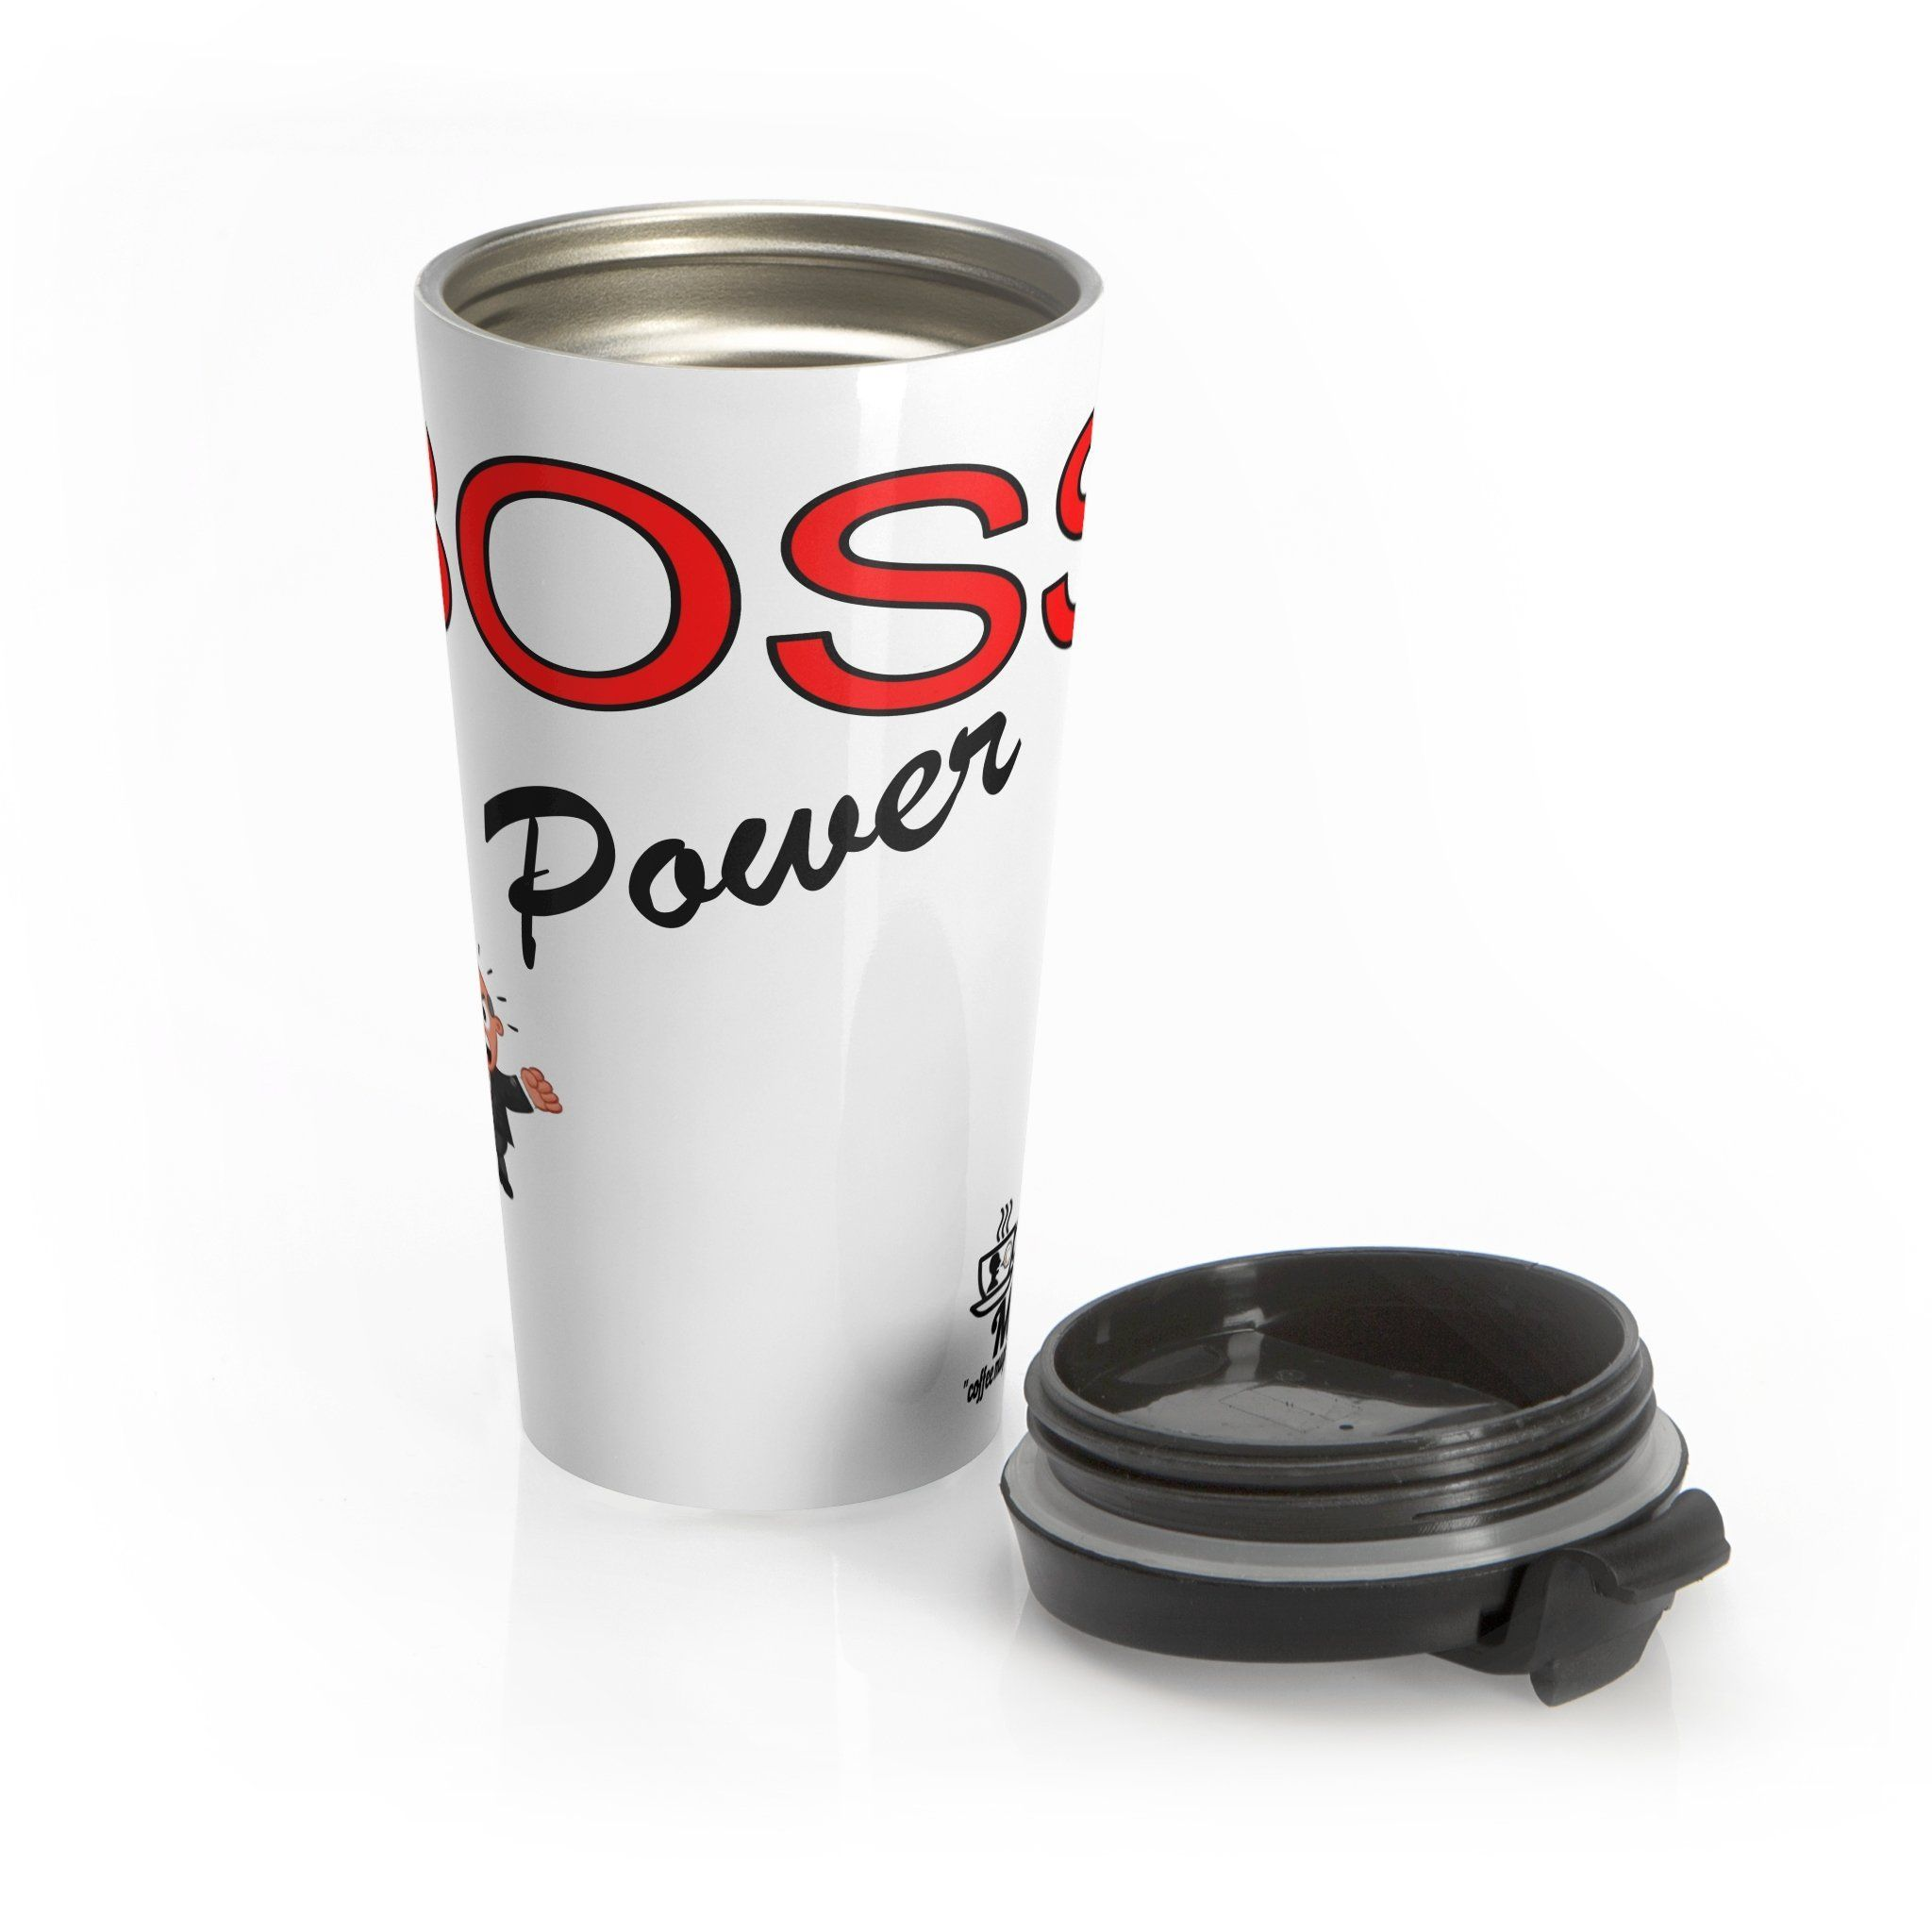 Boss power Stainless Steel Travel Mug